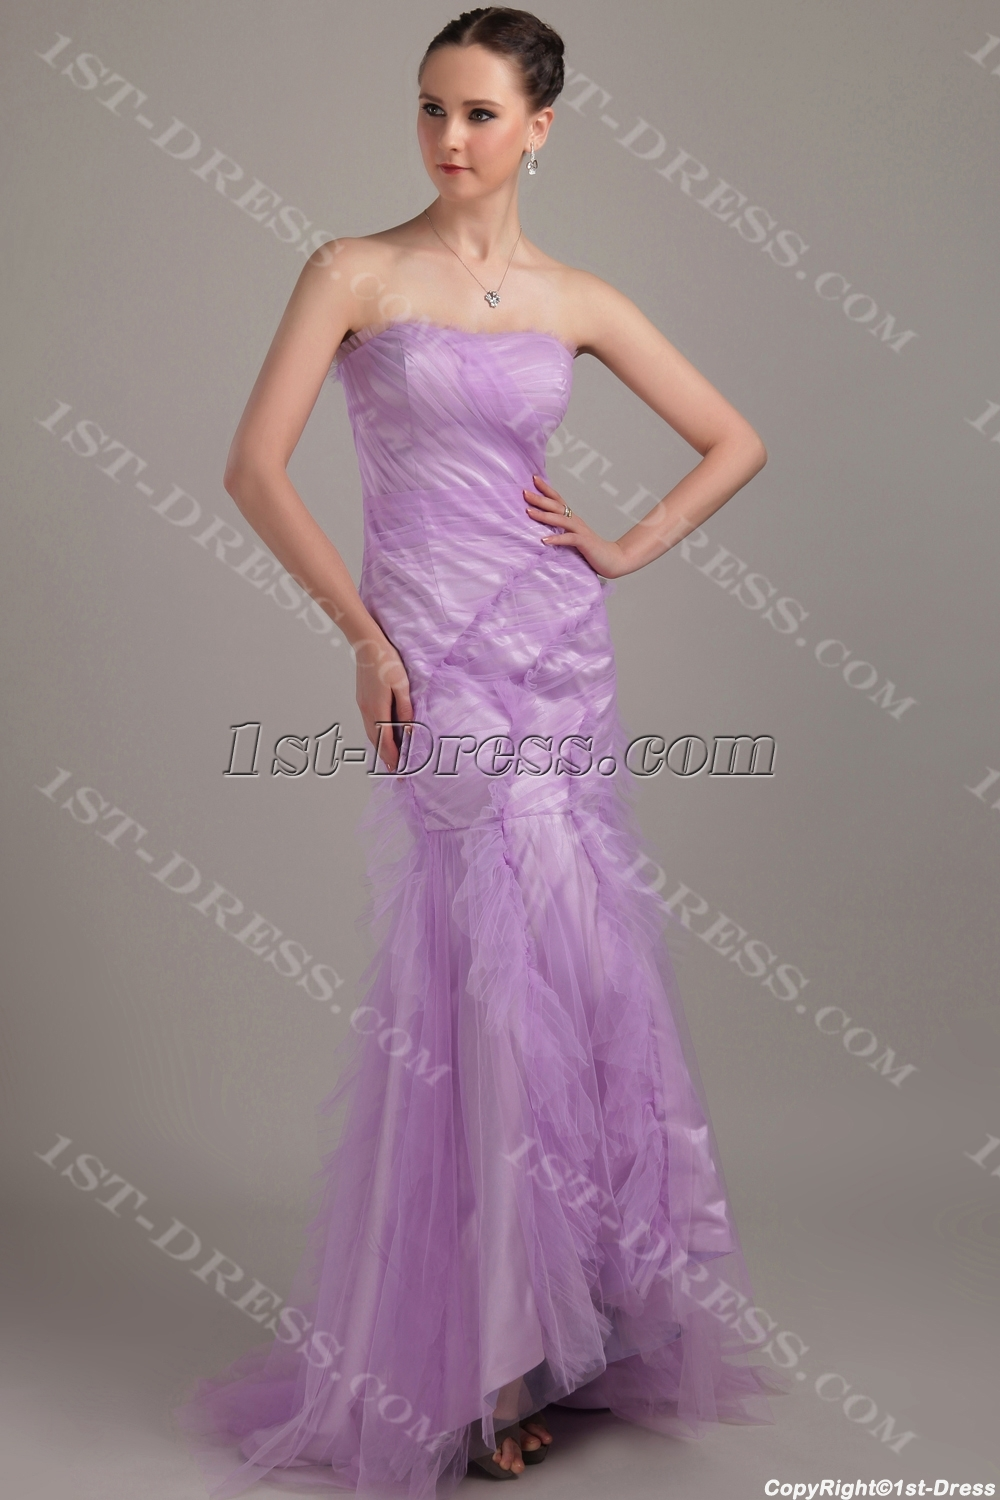 images/201304/big/Lilac-Romantic-Mermaid-Prom-Dress-2013-with-Train-IMG_3244-1060-b-1-1366191648.jpg